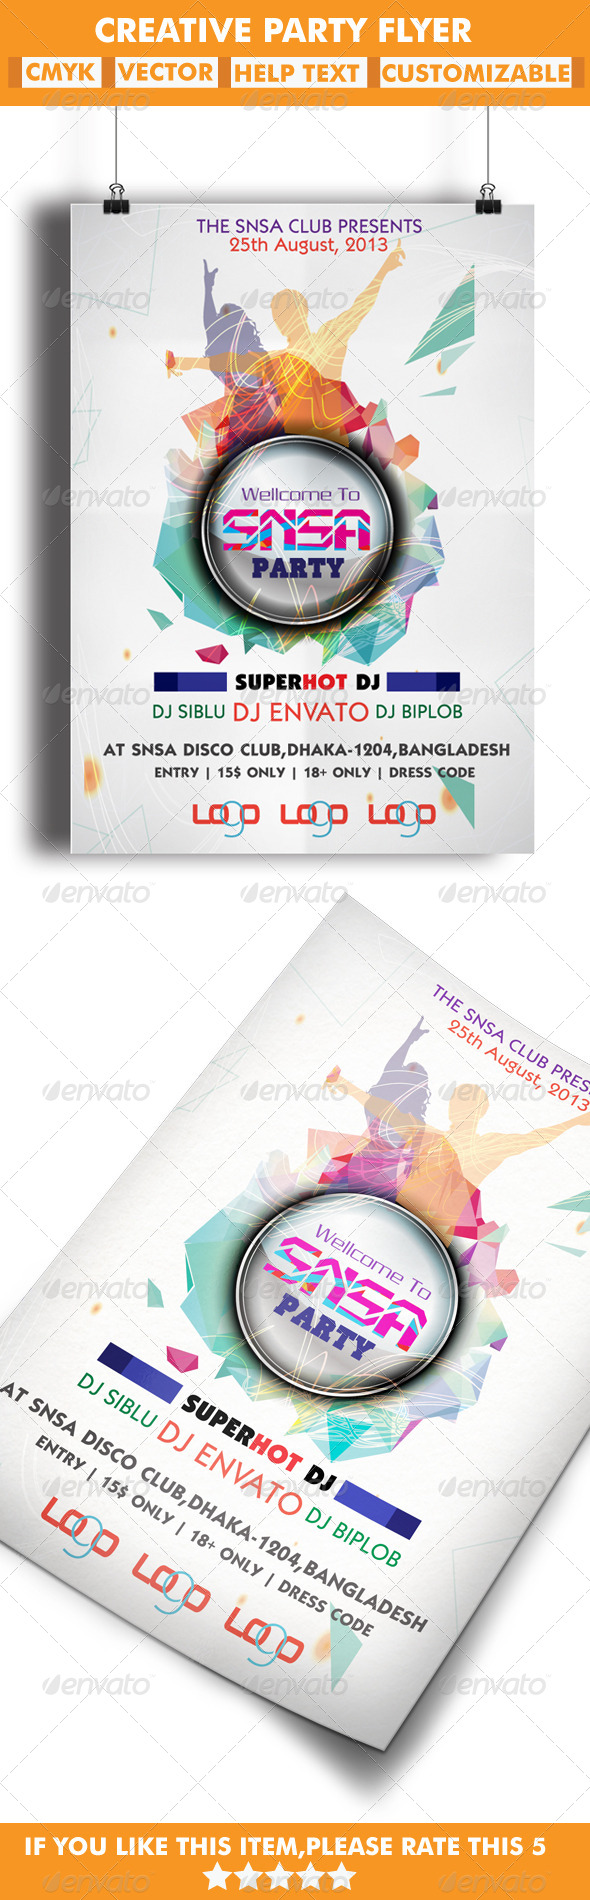 GraphicRiver Creative Party Flyer 5343135